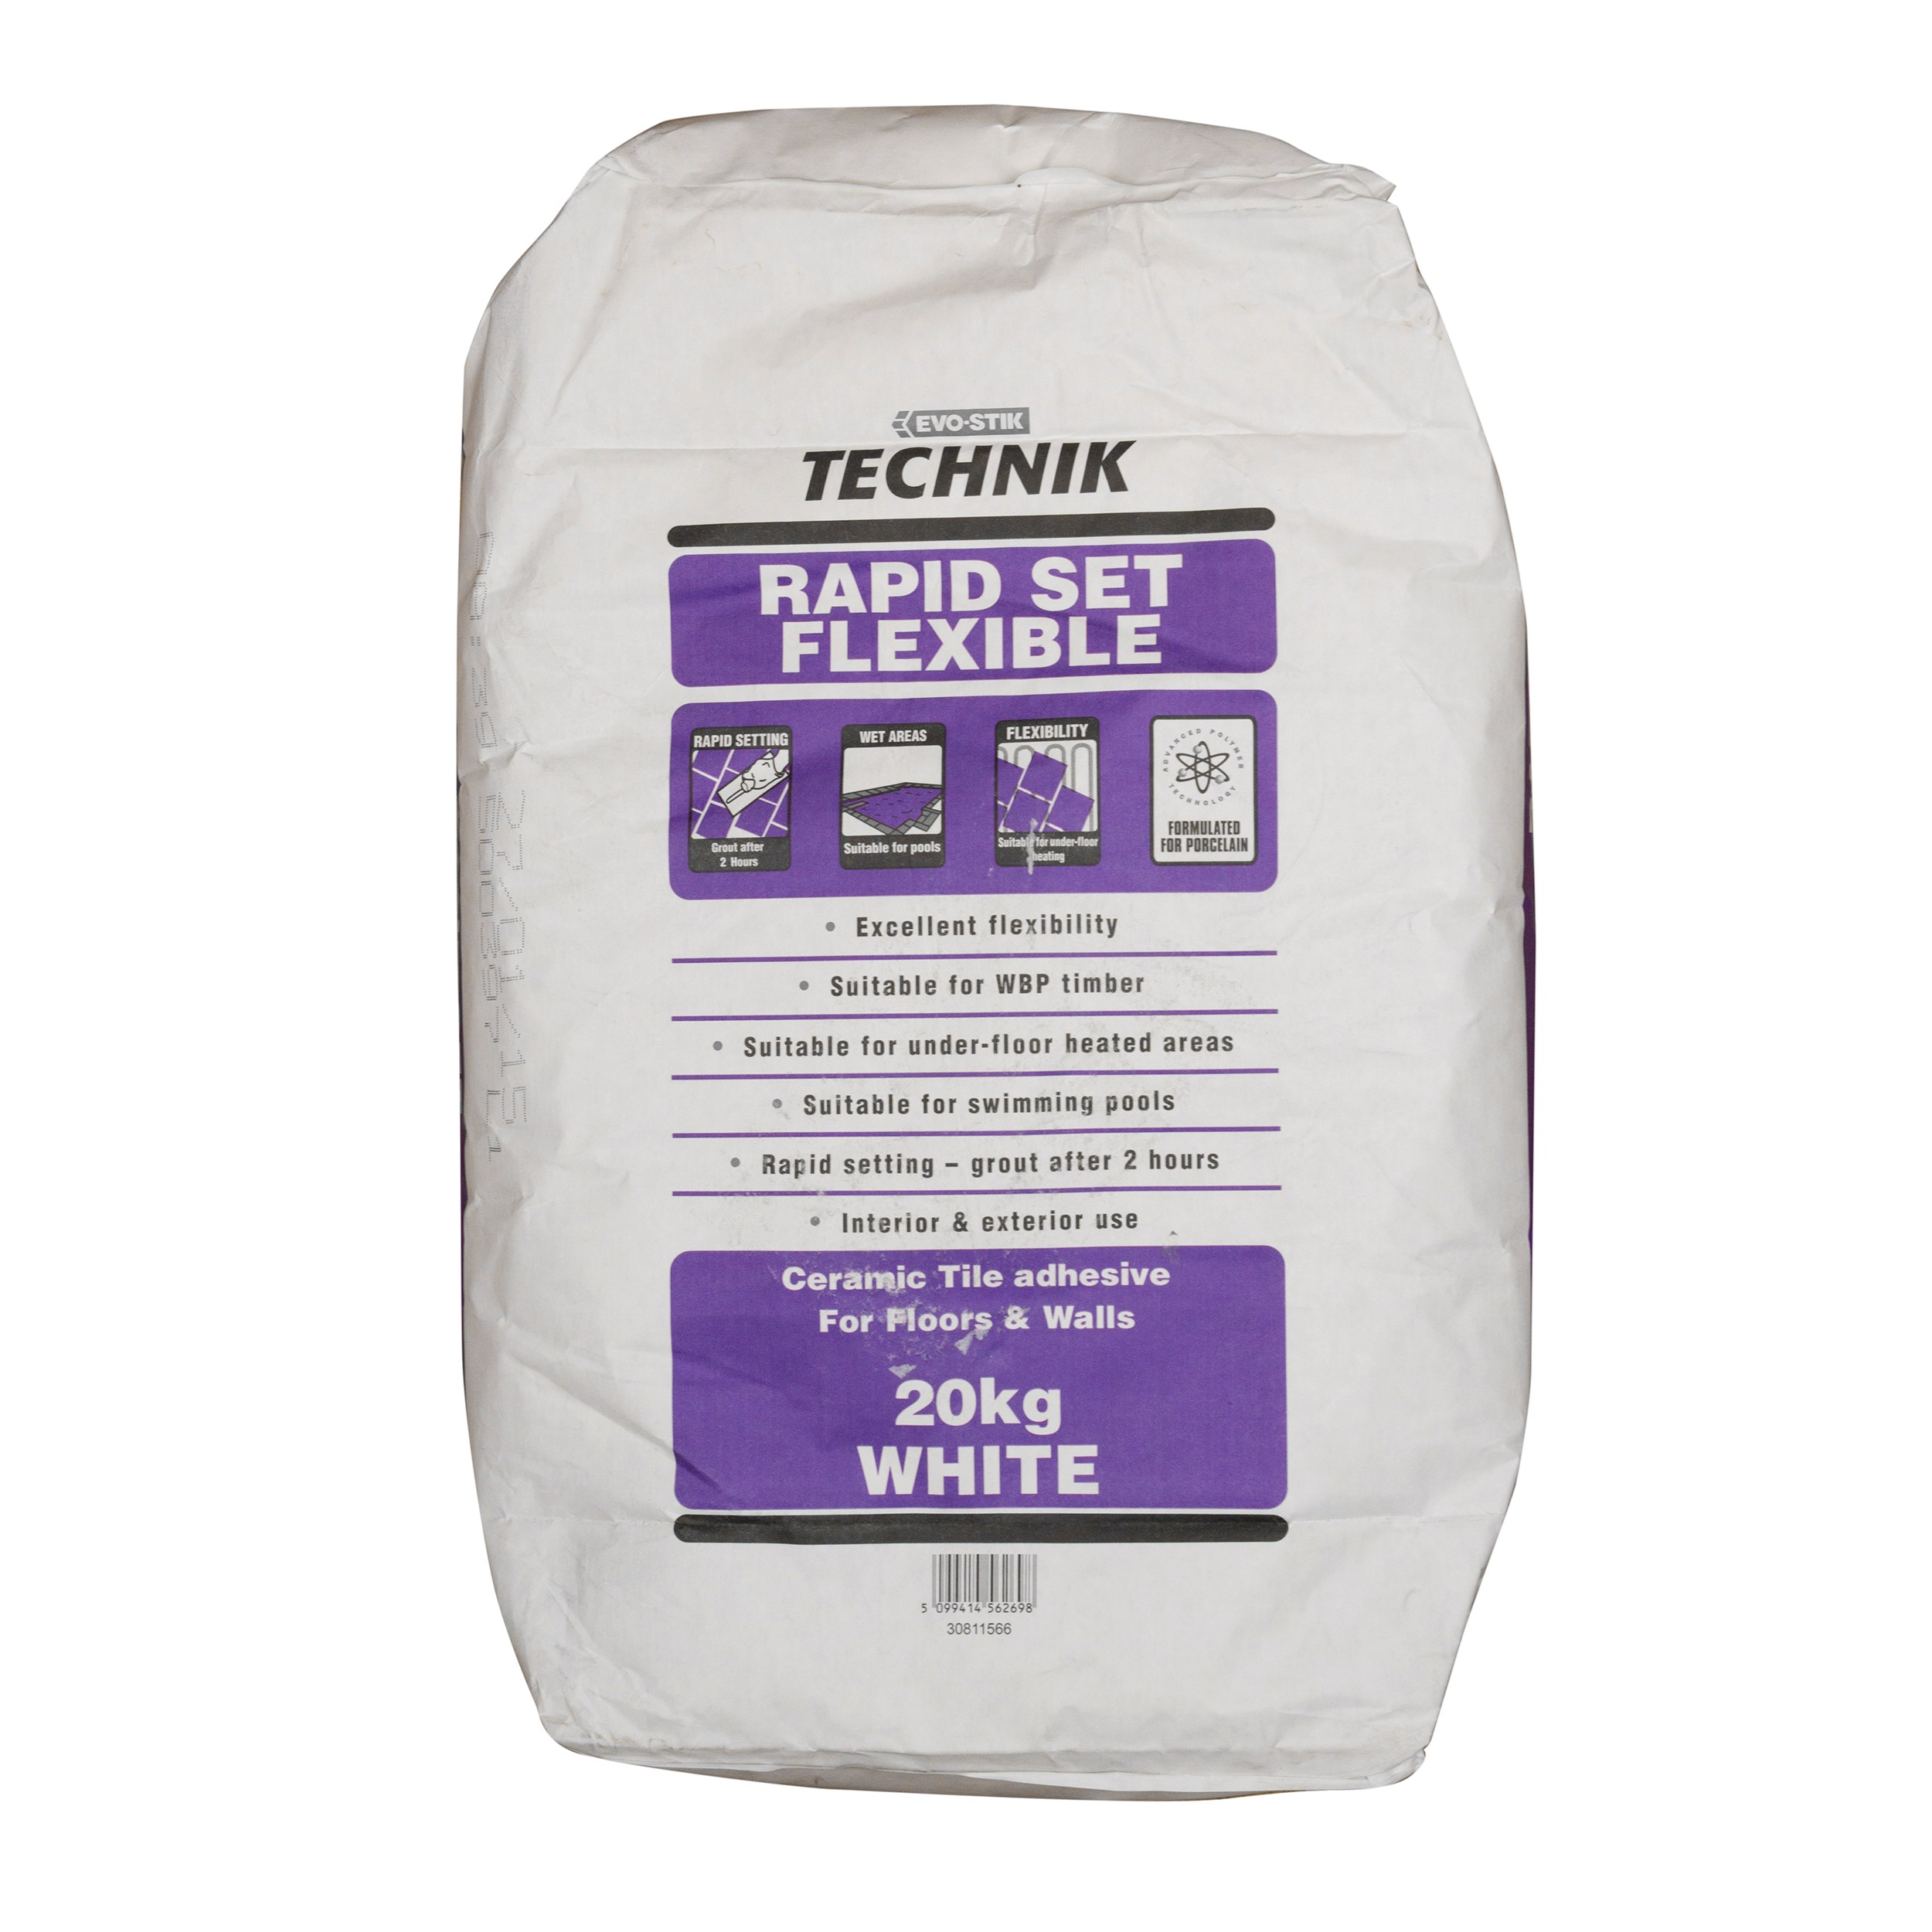 Evo-Stik Technik Rapid Set Flexible Wall & Floor Grout 20kg - White